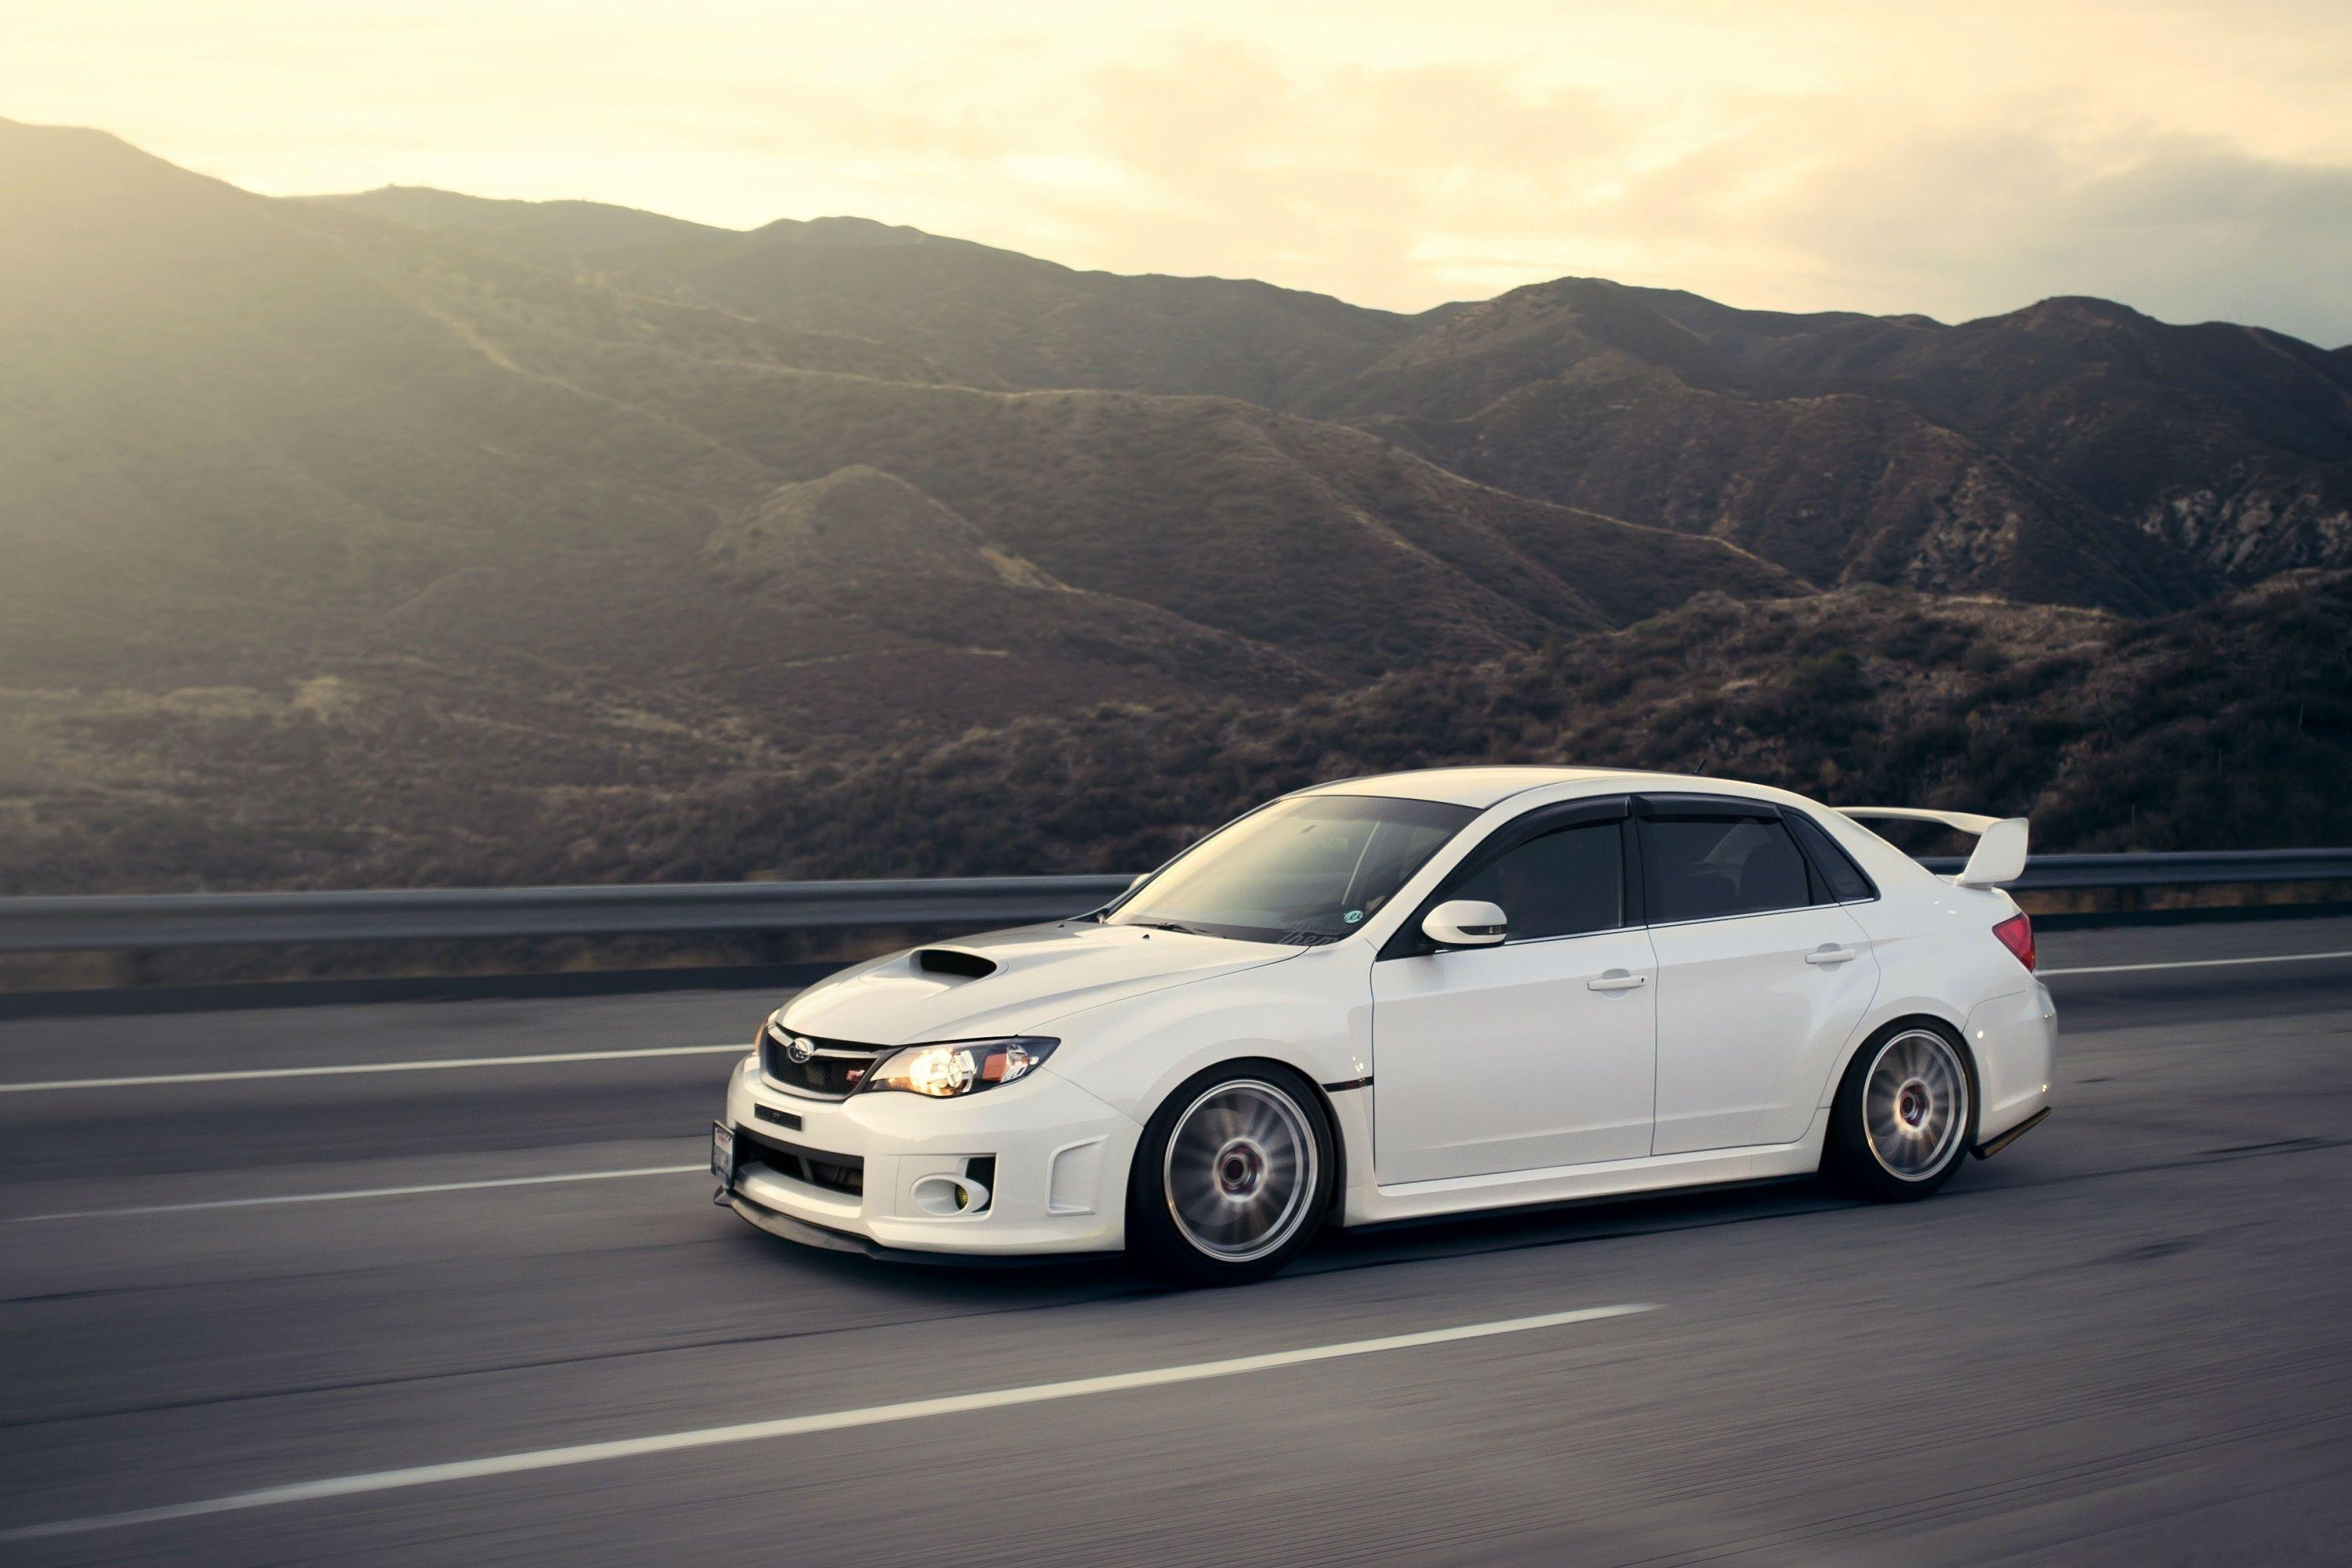 Subaru WRX STi Wallpapers - Wallpaper Cave | Cars | Pinterest ...